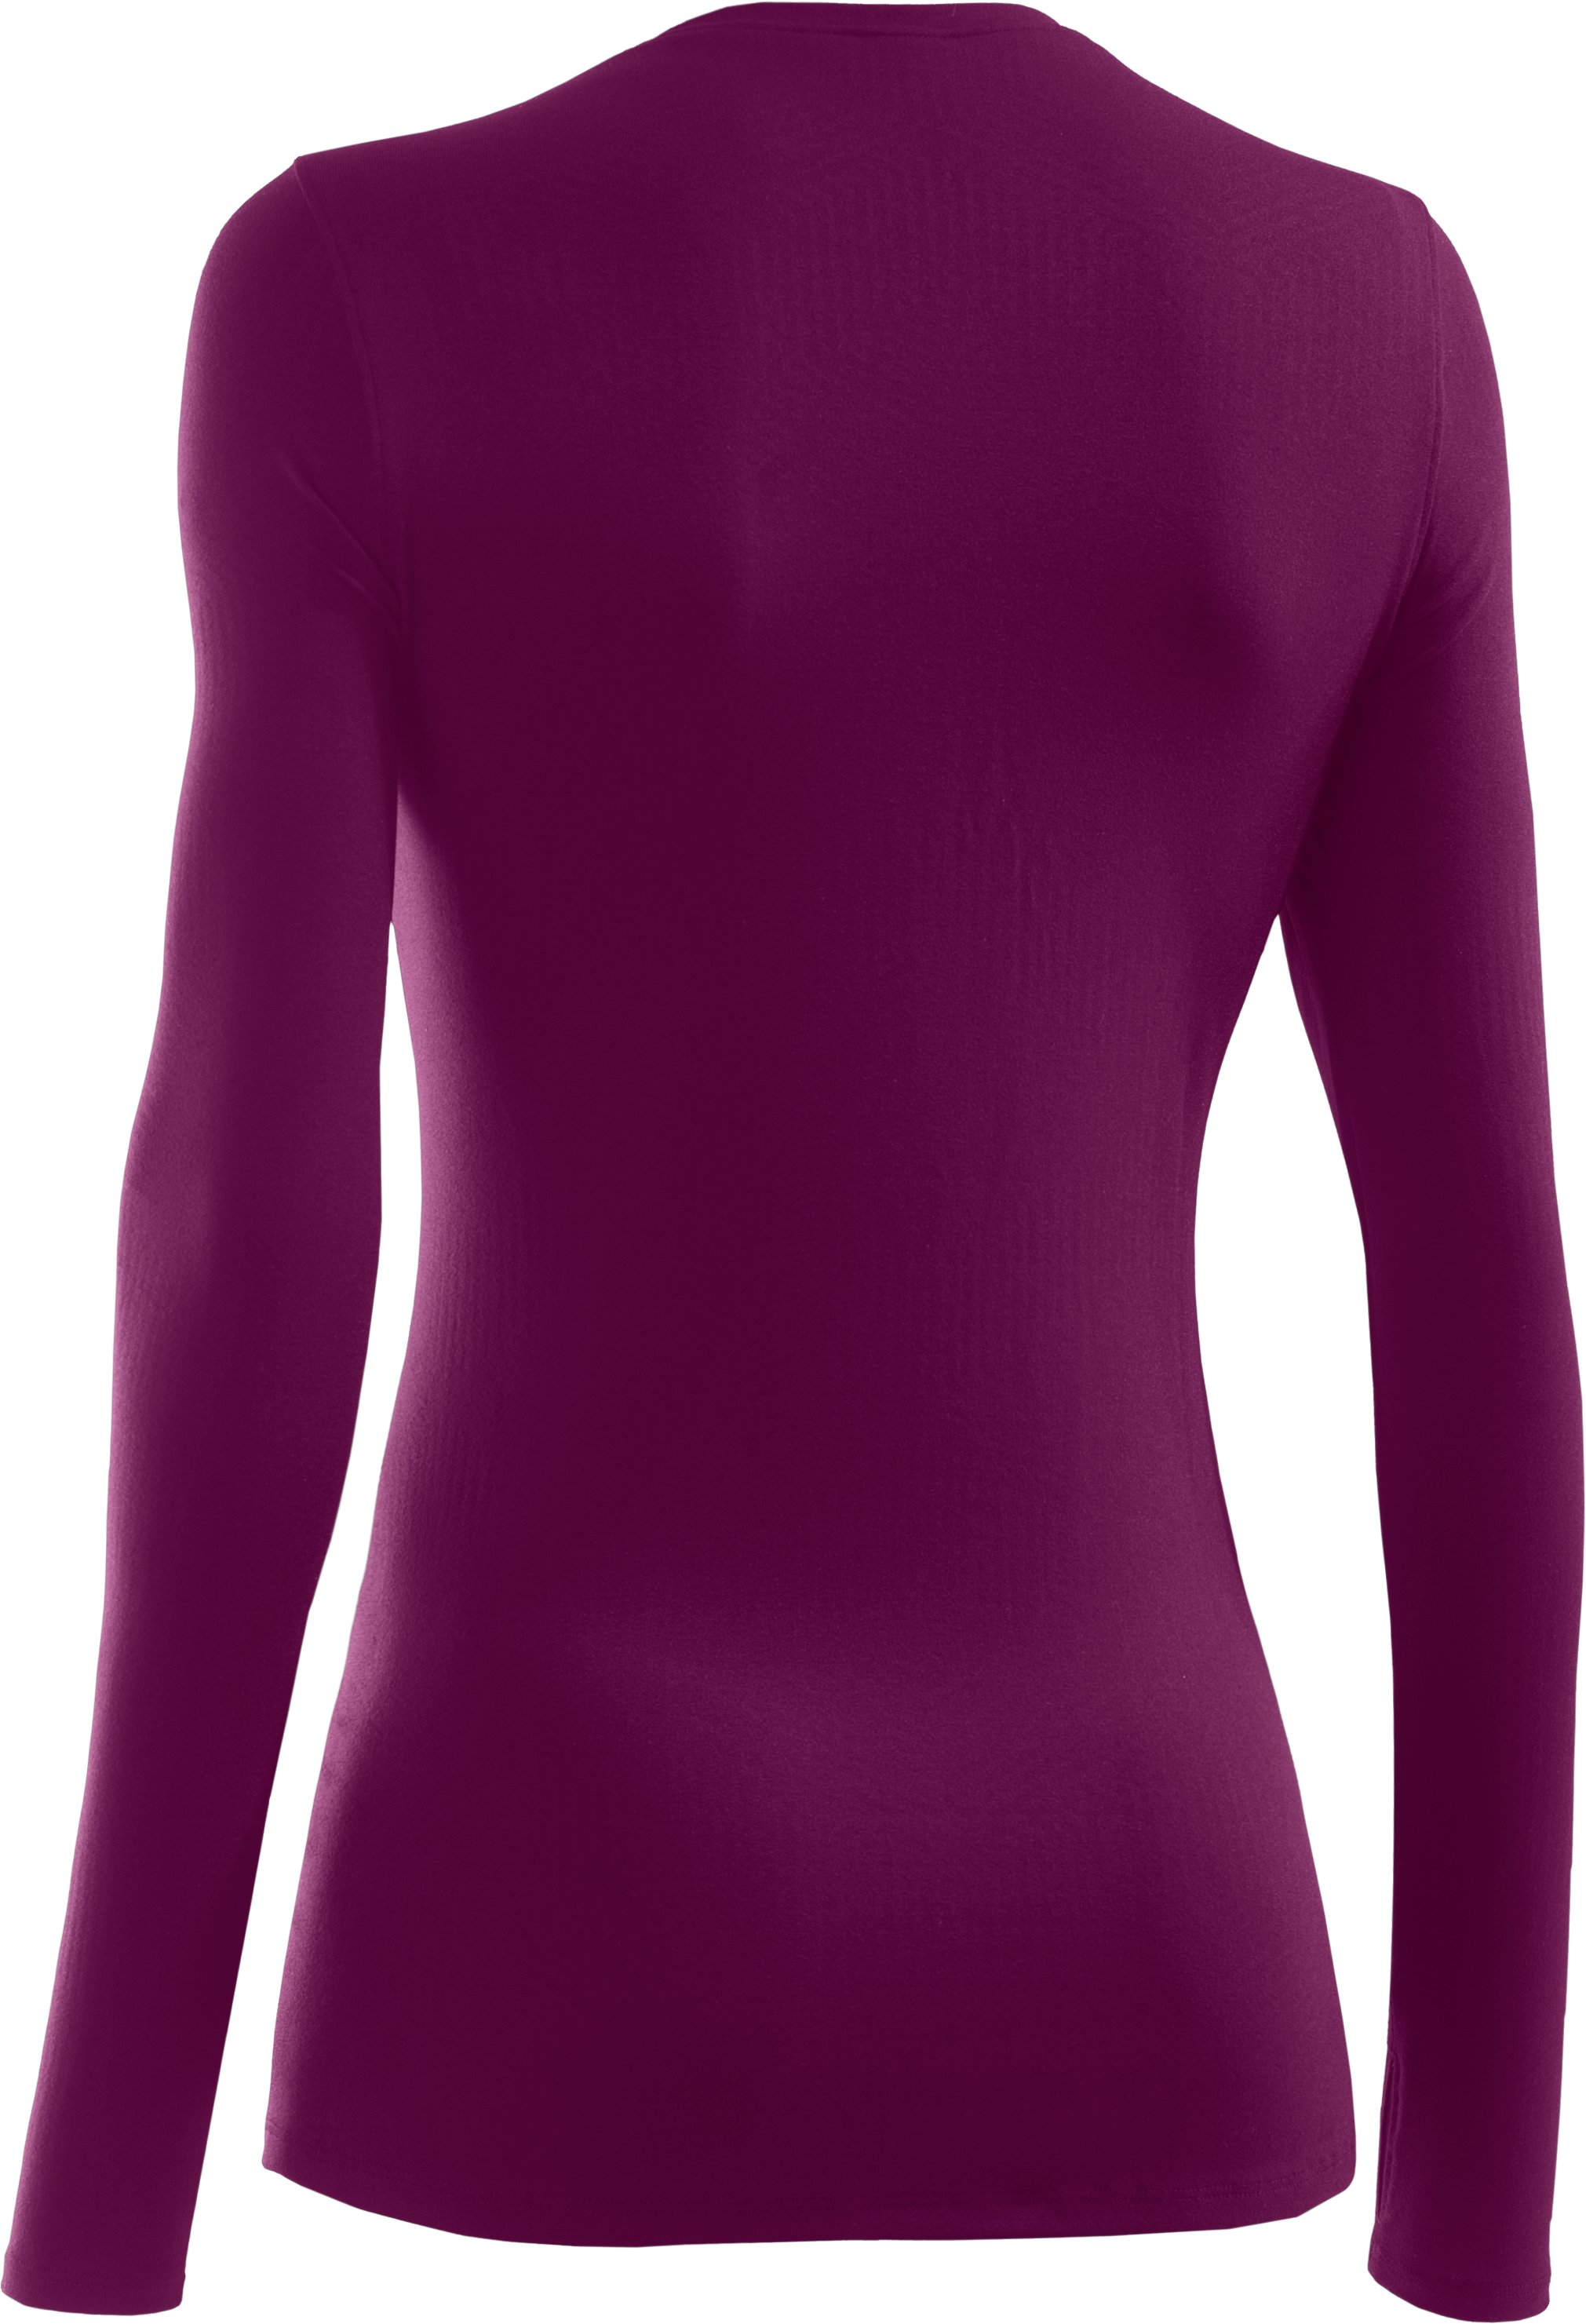 Women's ColdGear® Infrared V-Neck Long Sleeve, Aubergine